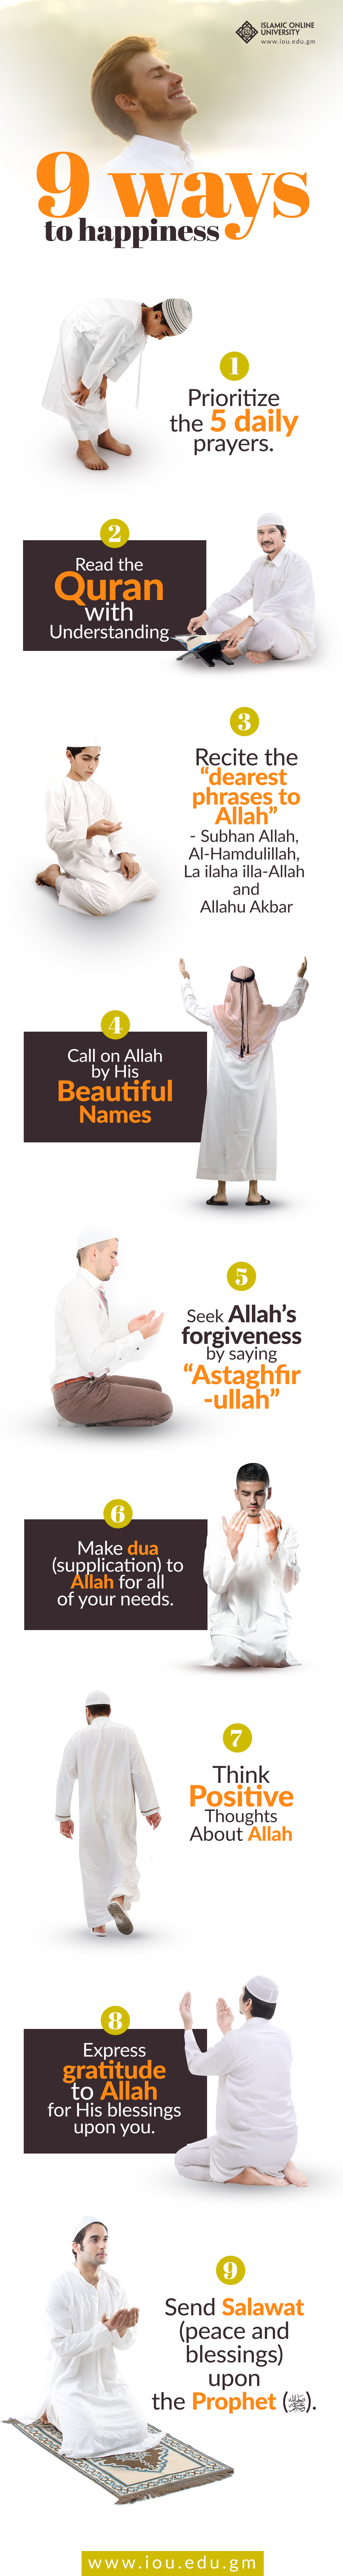 9 Ways To Purify Your Heart With the Remembrance of Allah